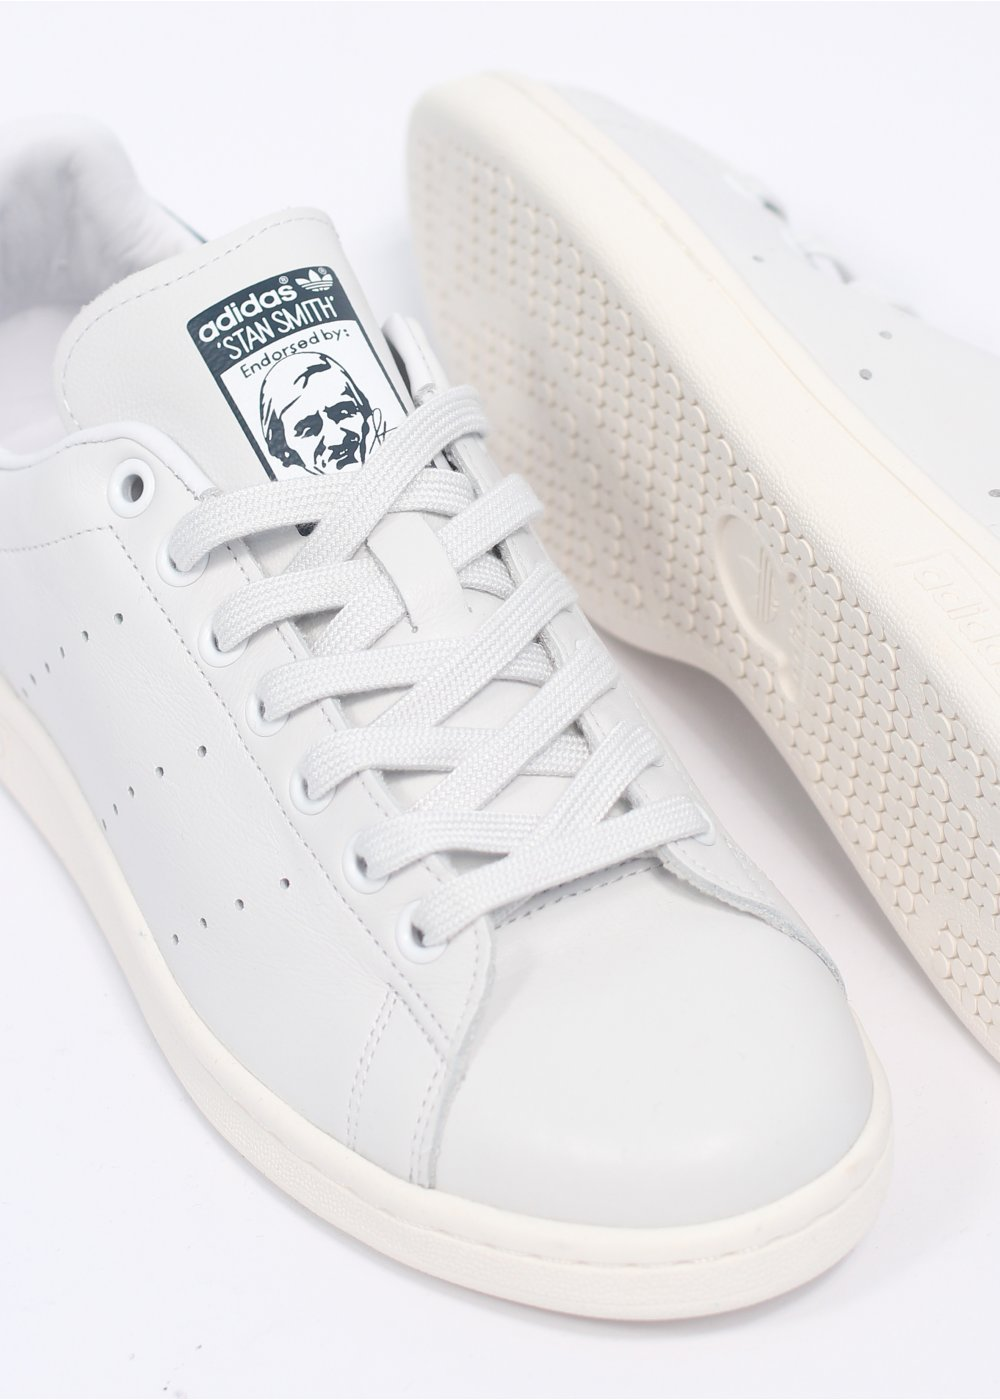 adidas Originals Footwear Stan Smith Vintage Leather Trainers Neo White New Navy